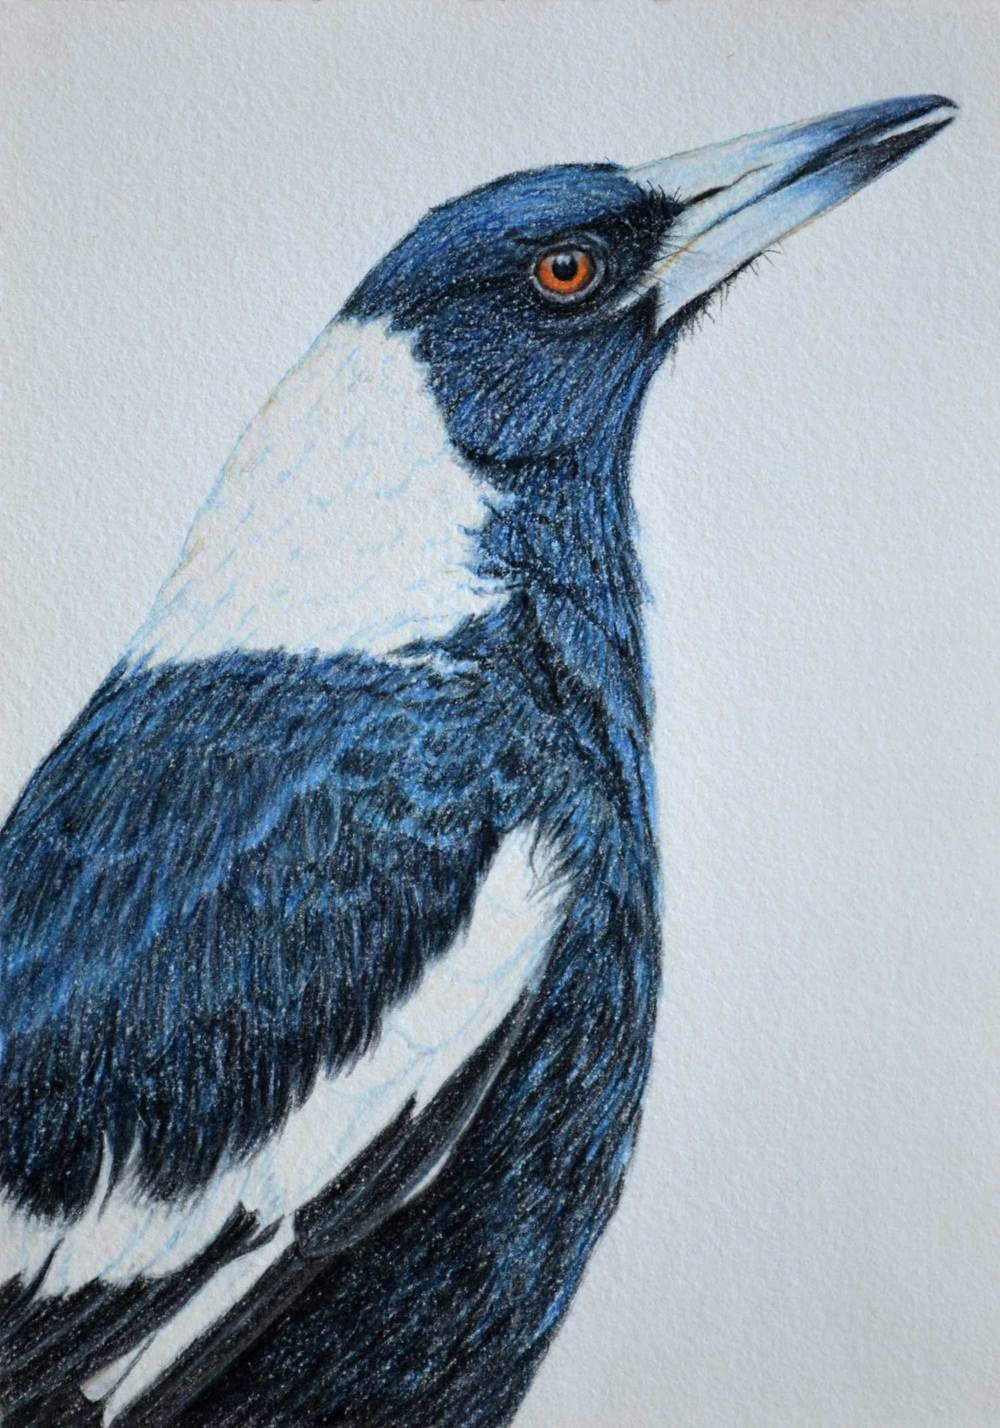 Australian Magpie    30 x 21 cm Pastel on handmade paper SOLD